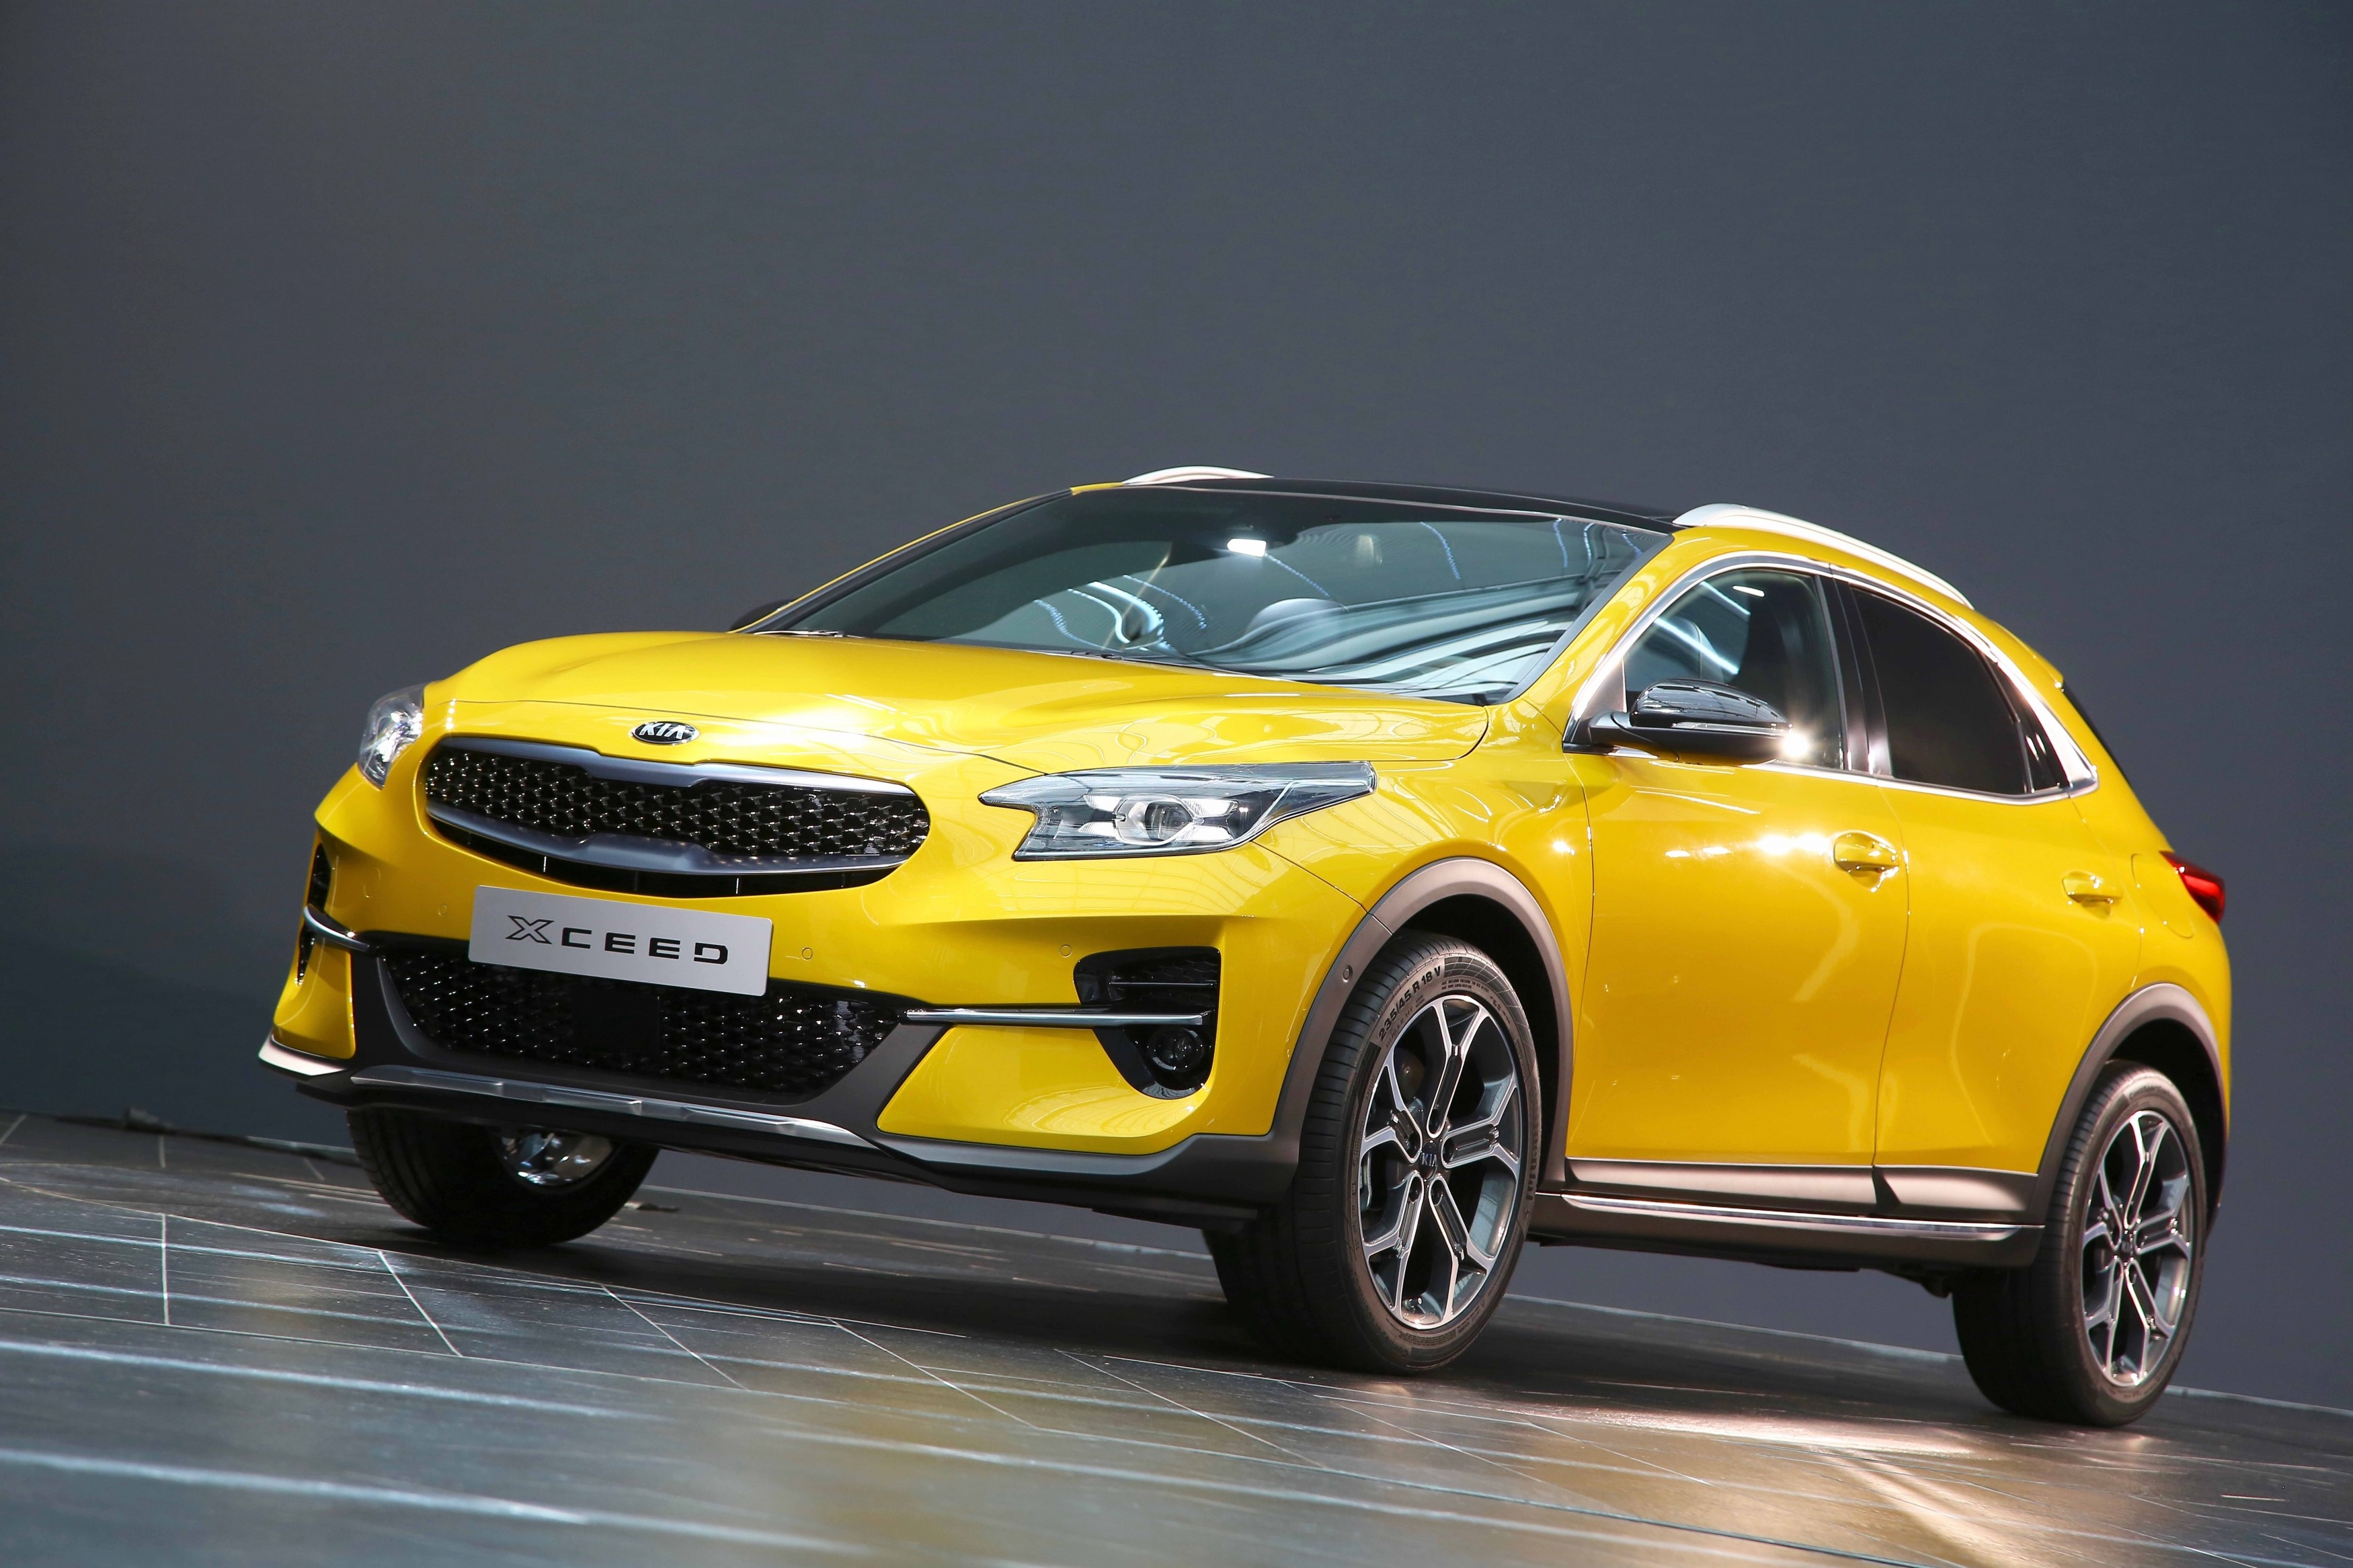 Kia Xceed Priced From £20,795